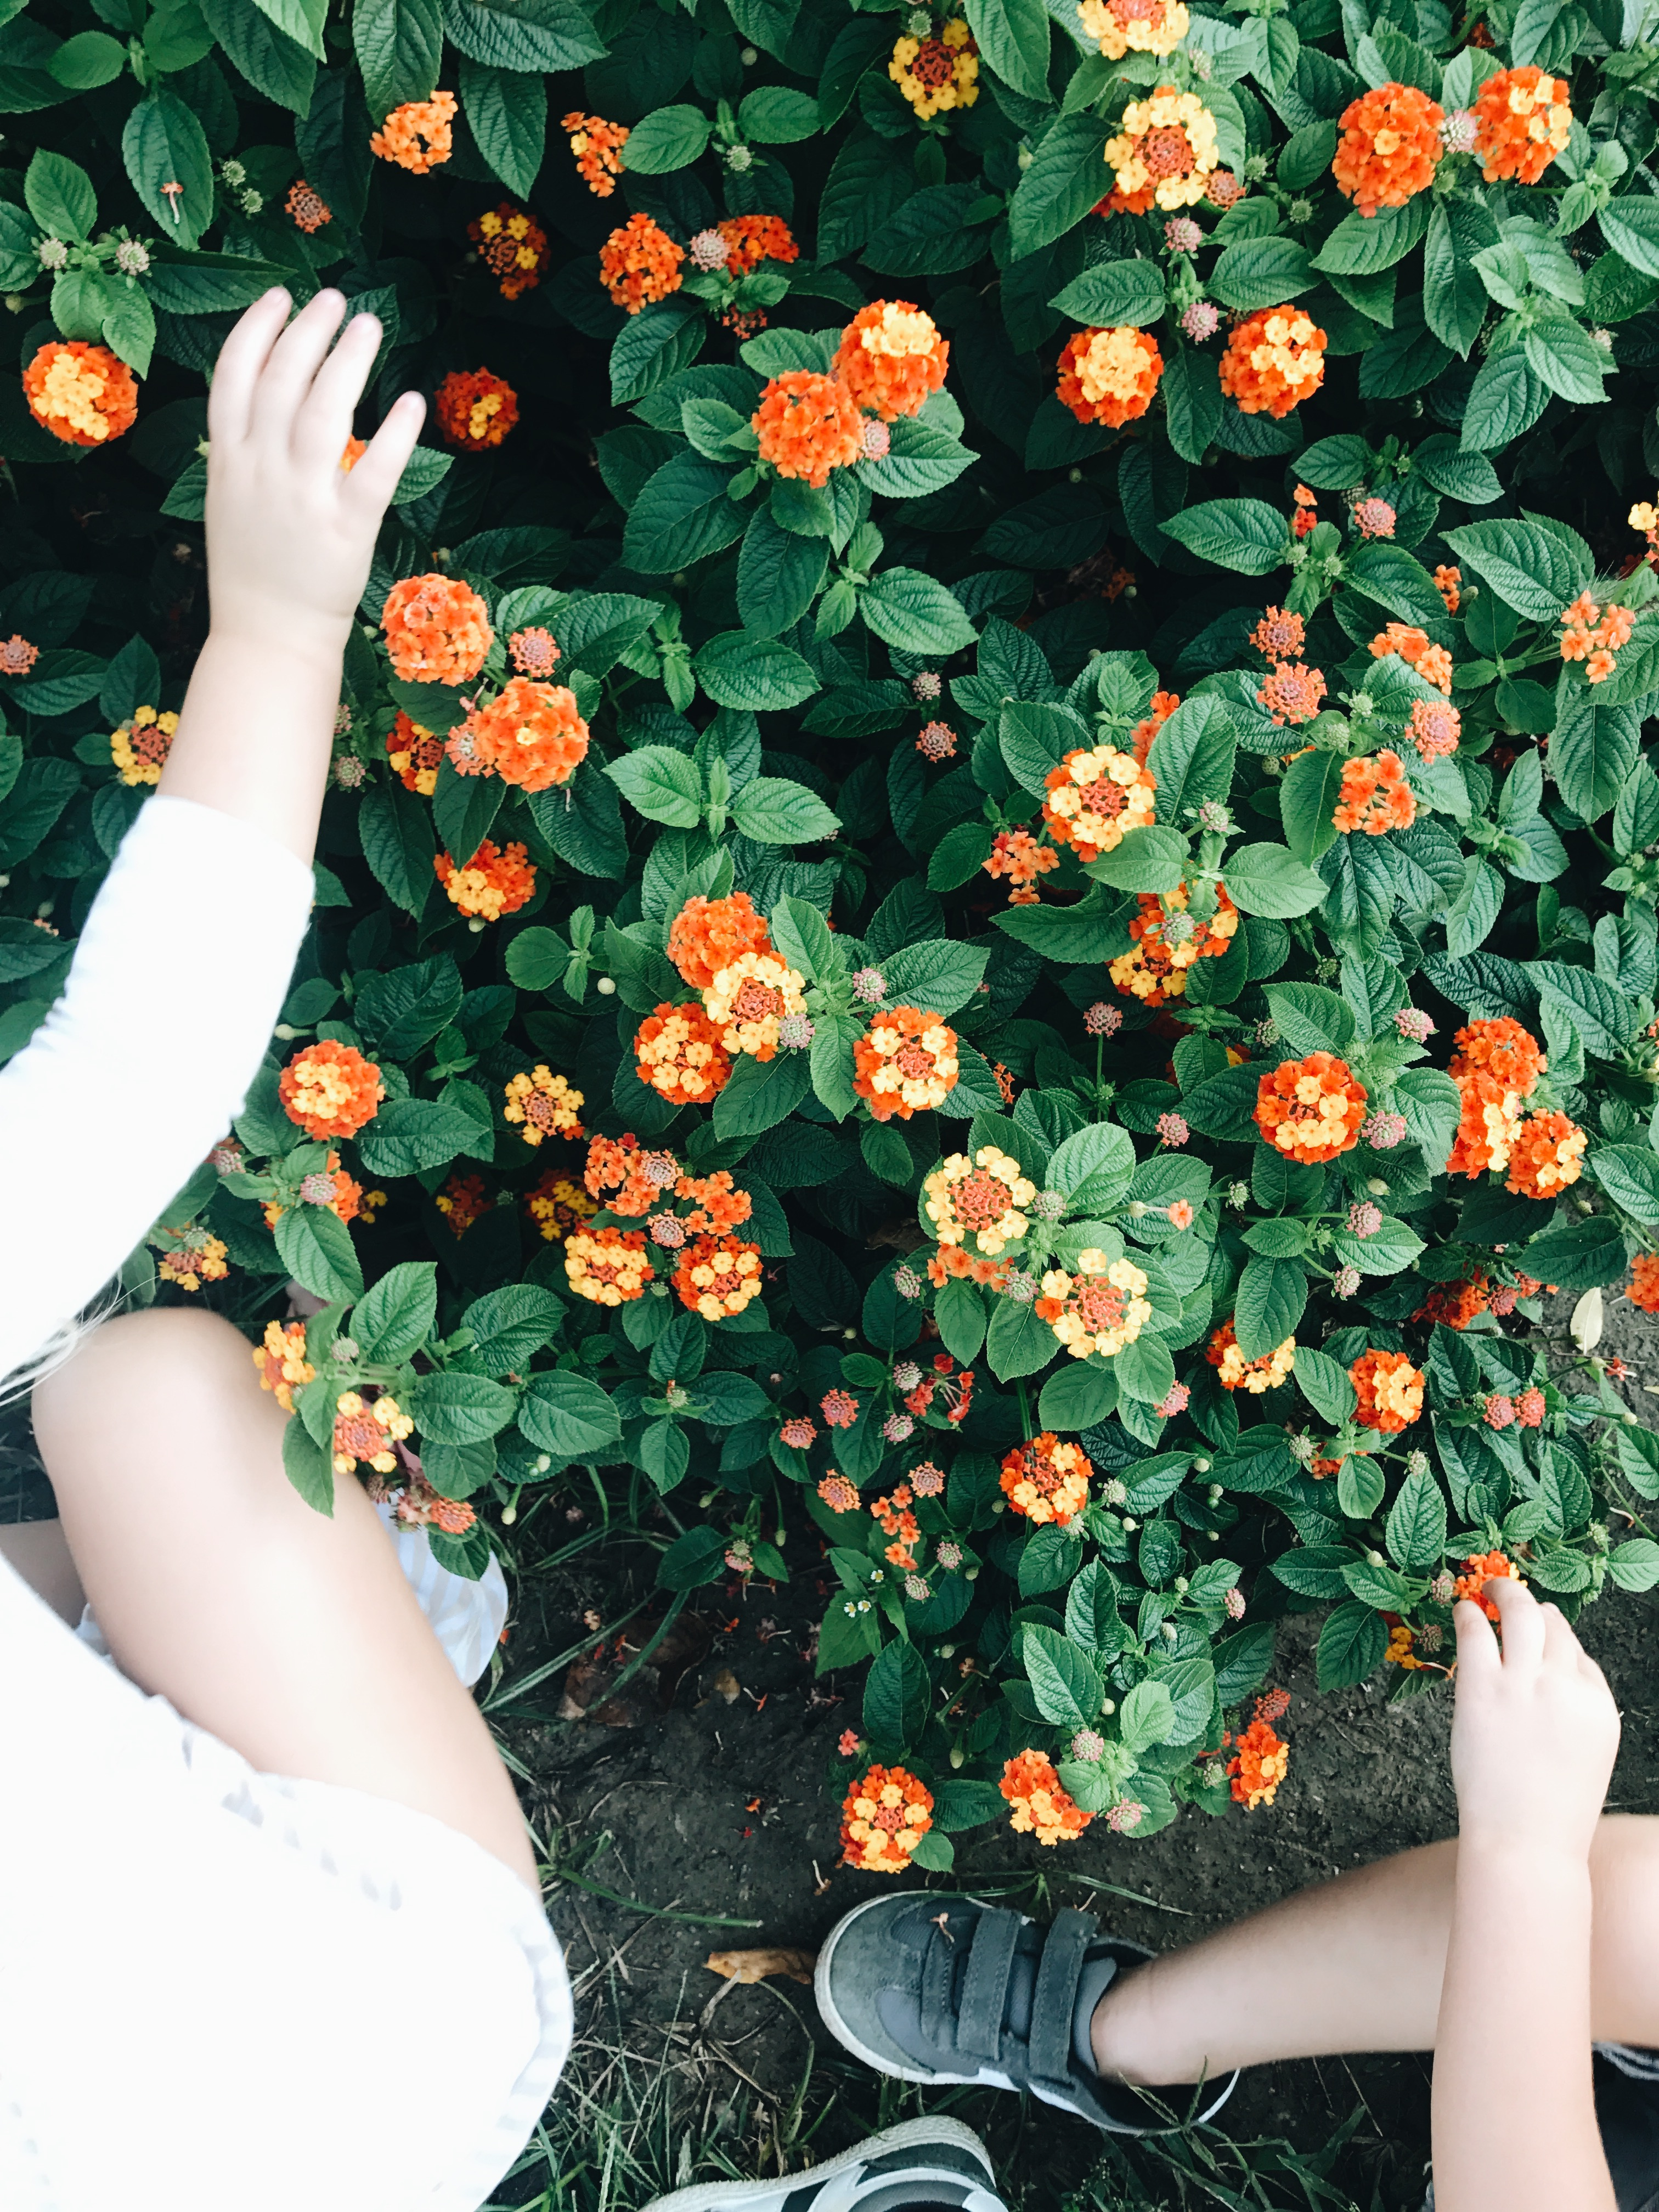 Flowers and toddler hands